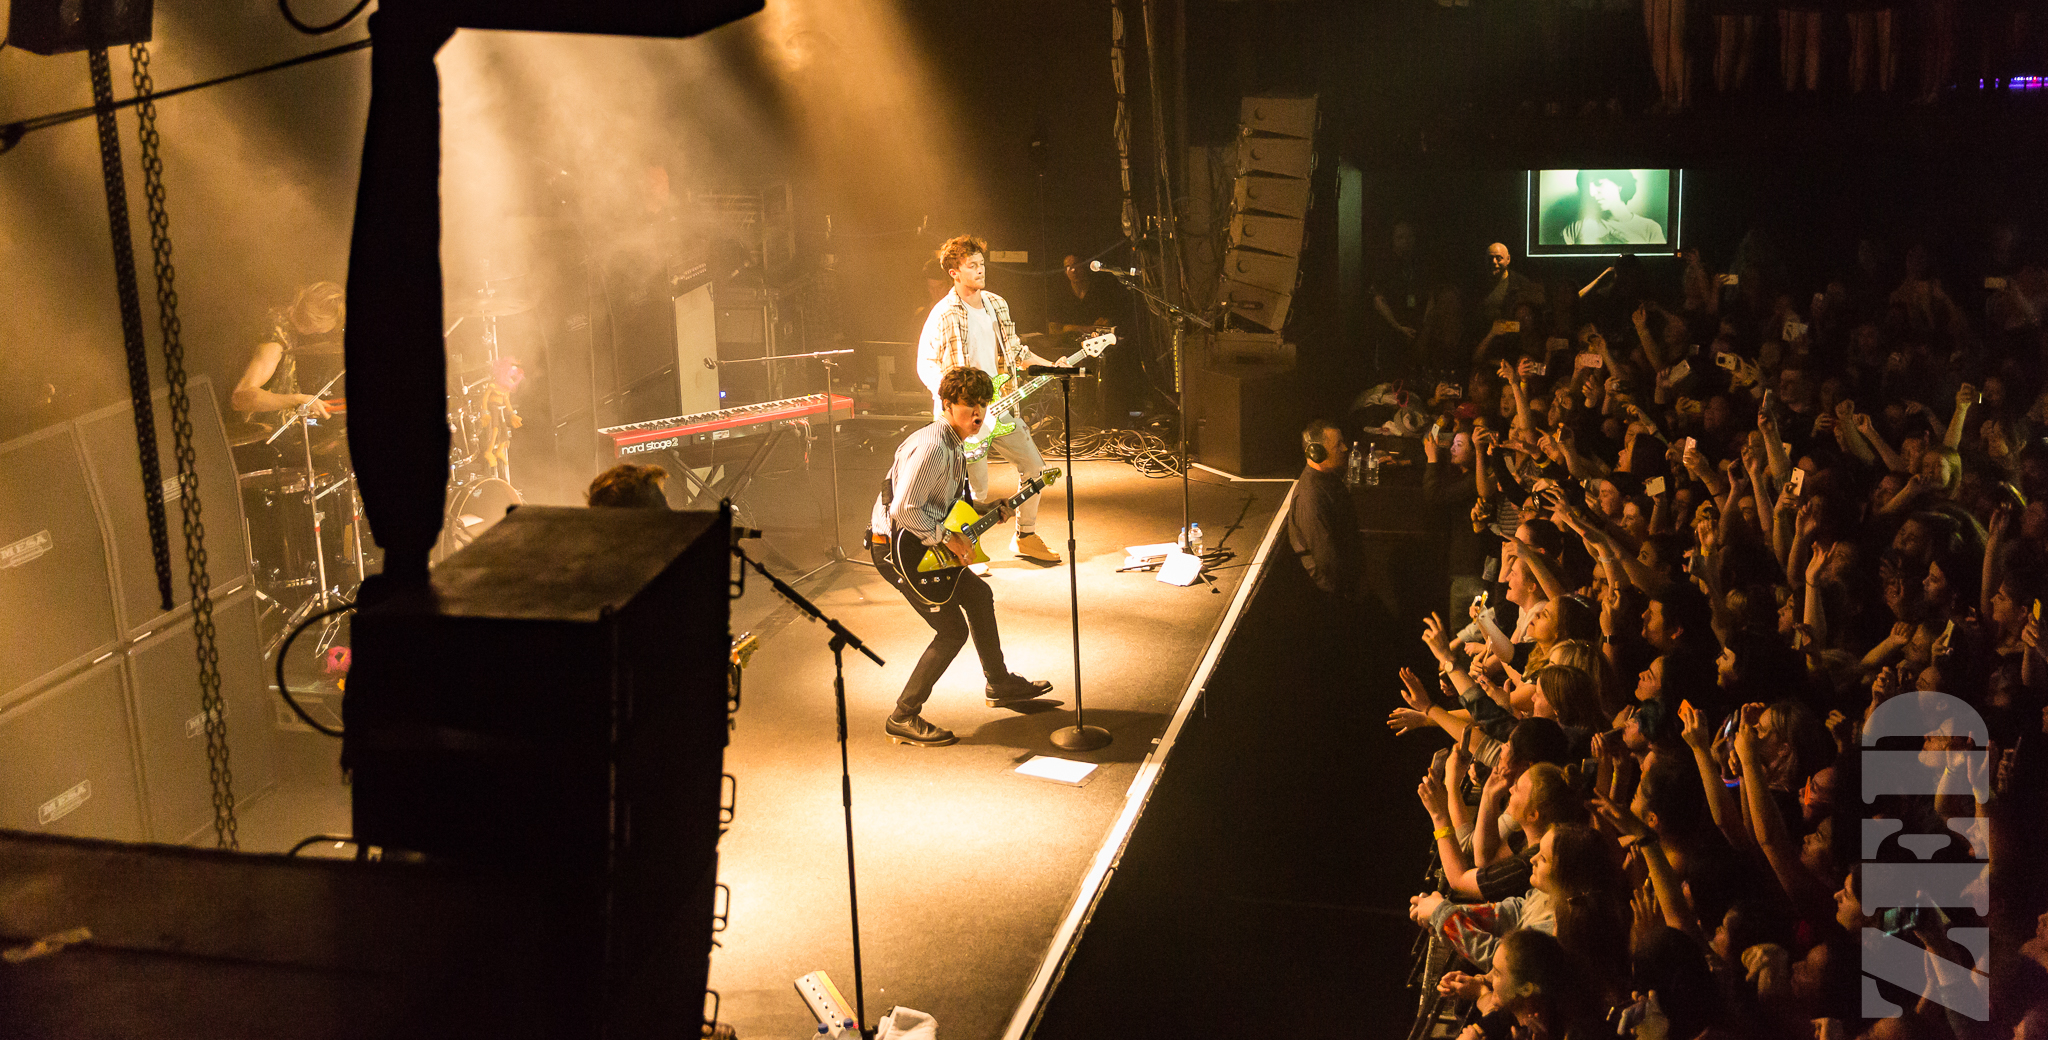 Concert Review - The Vamps, Auckland New Zealand, 2017